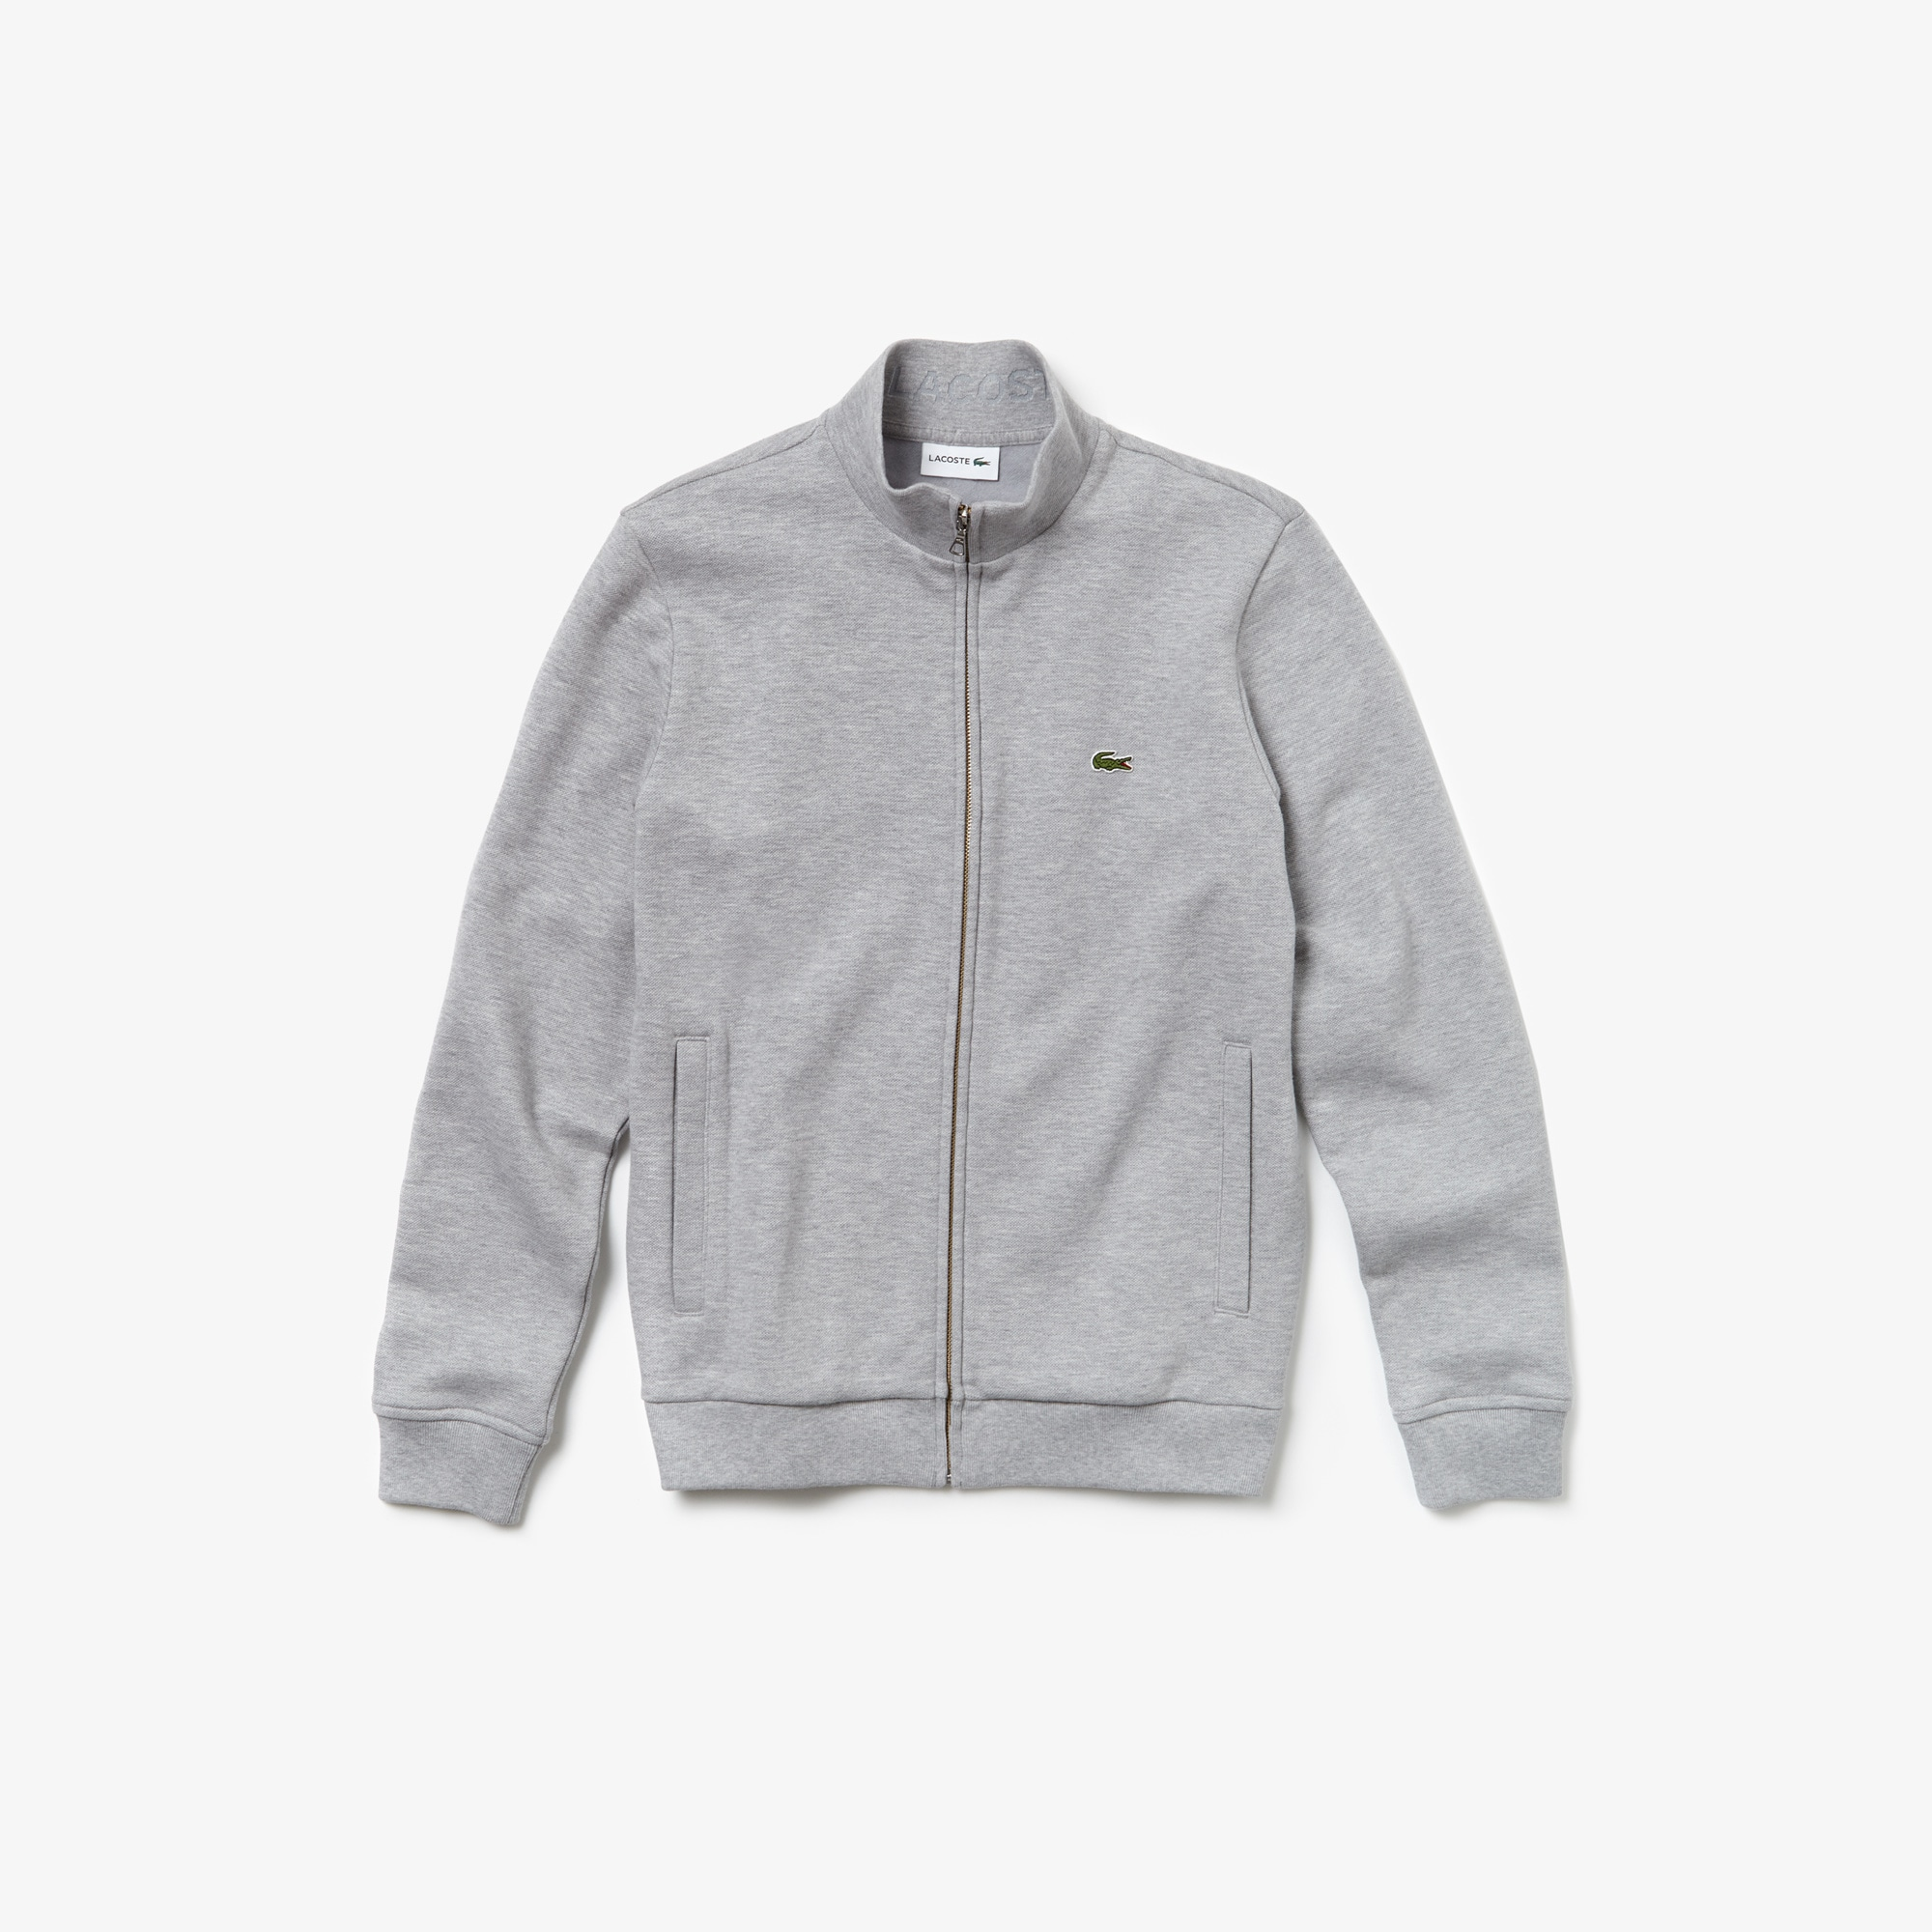 Men's Zip Fleece Sweatshirt